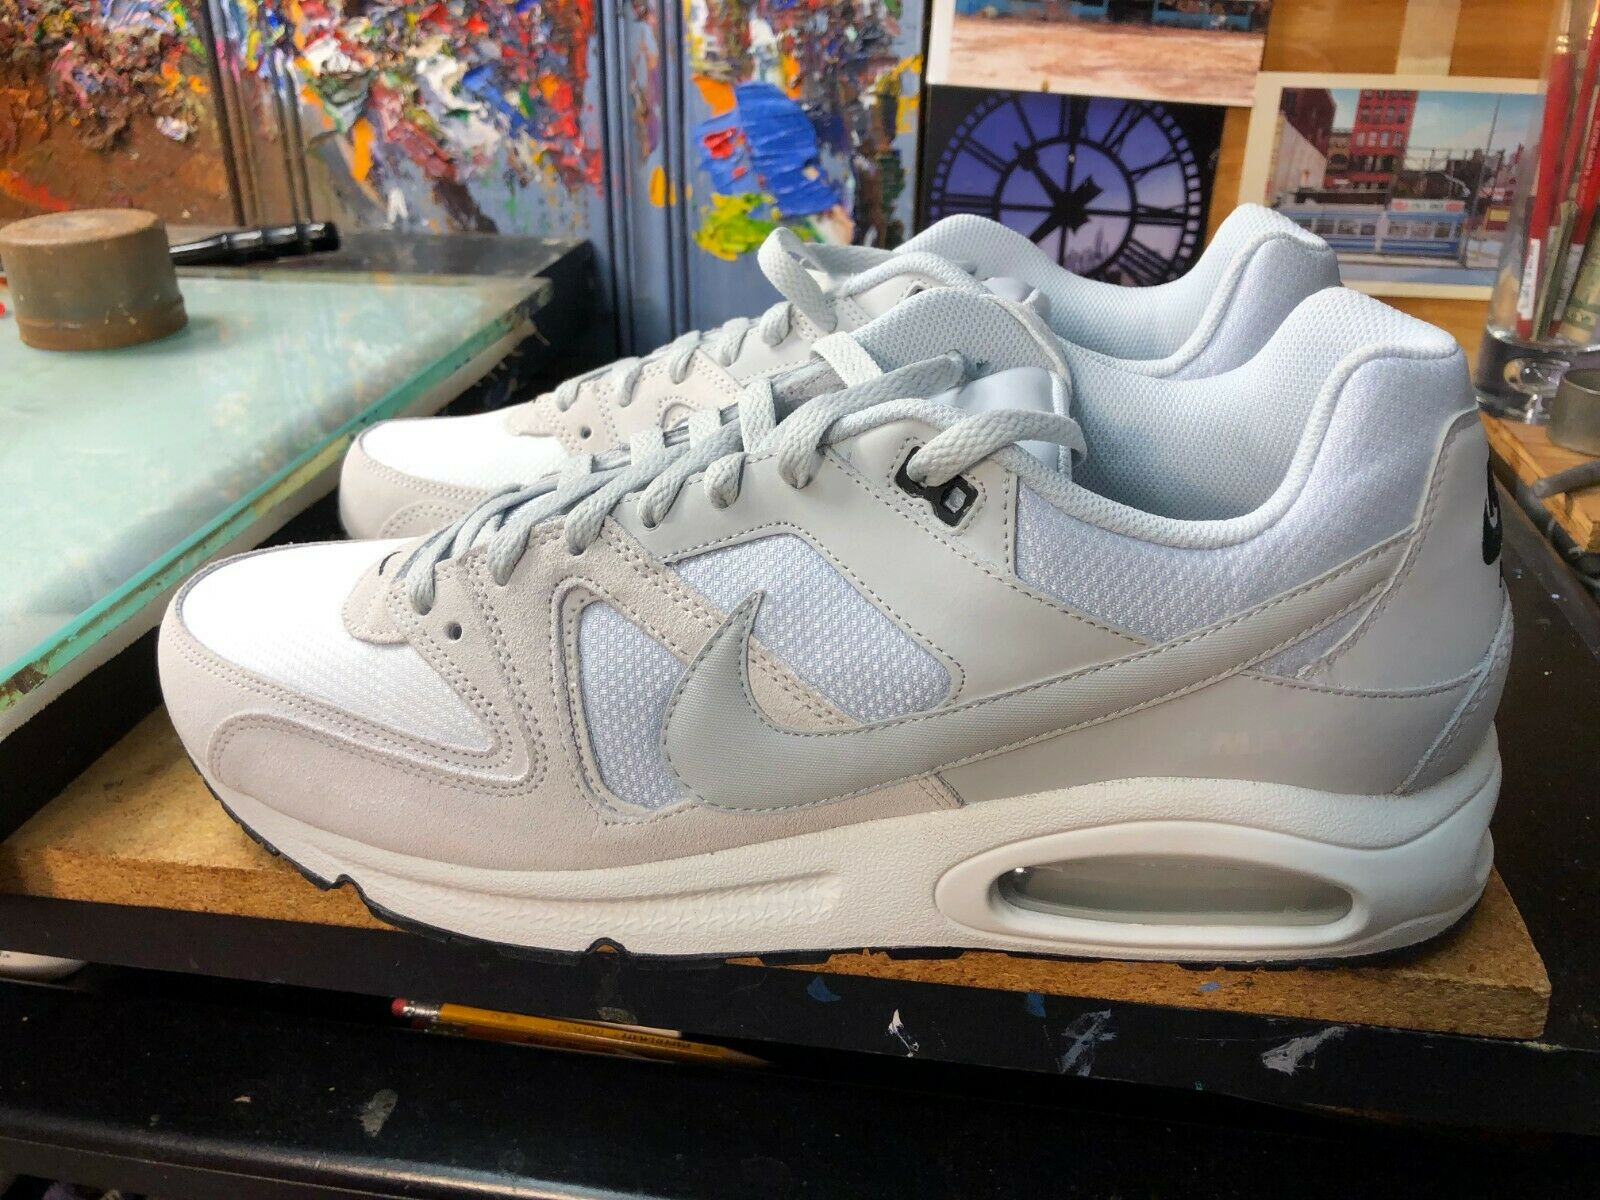 premium selection 5f8a1 69c67 Nike Air Max Command Summit White Platinum Leather Size US 14 Men 629993  102 New